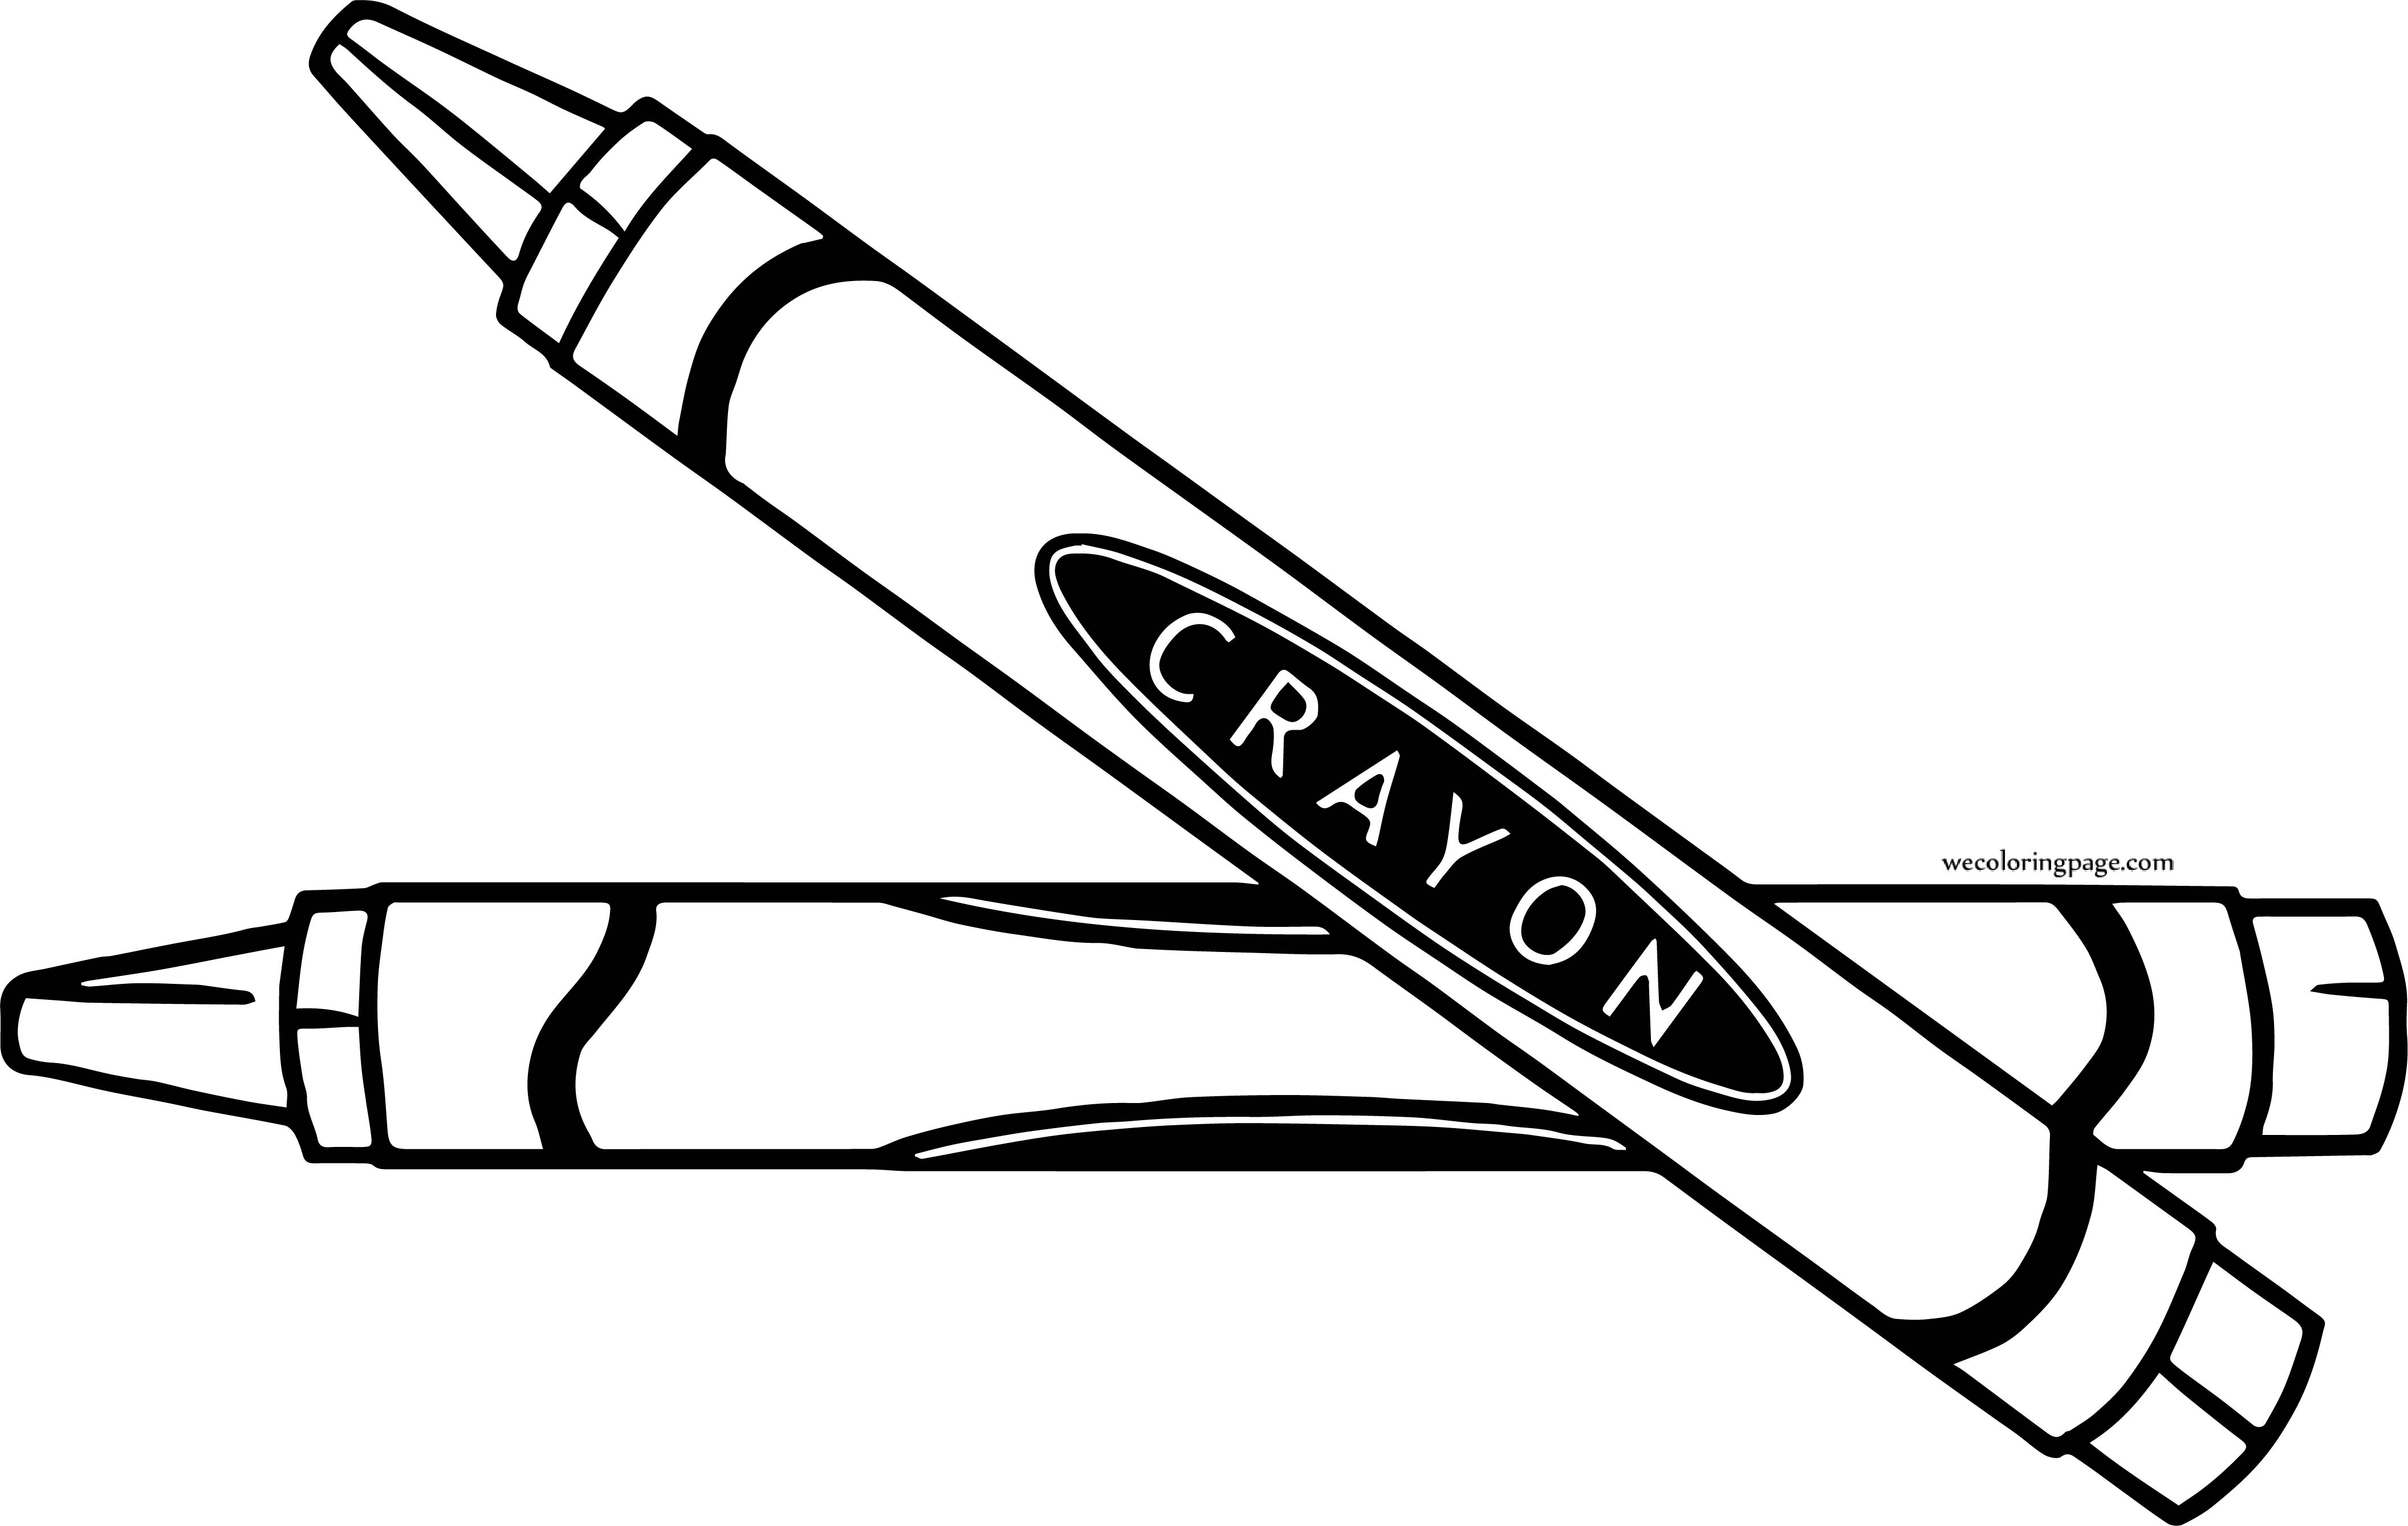 Two Pen Crayon Realistic Coloring Page